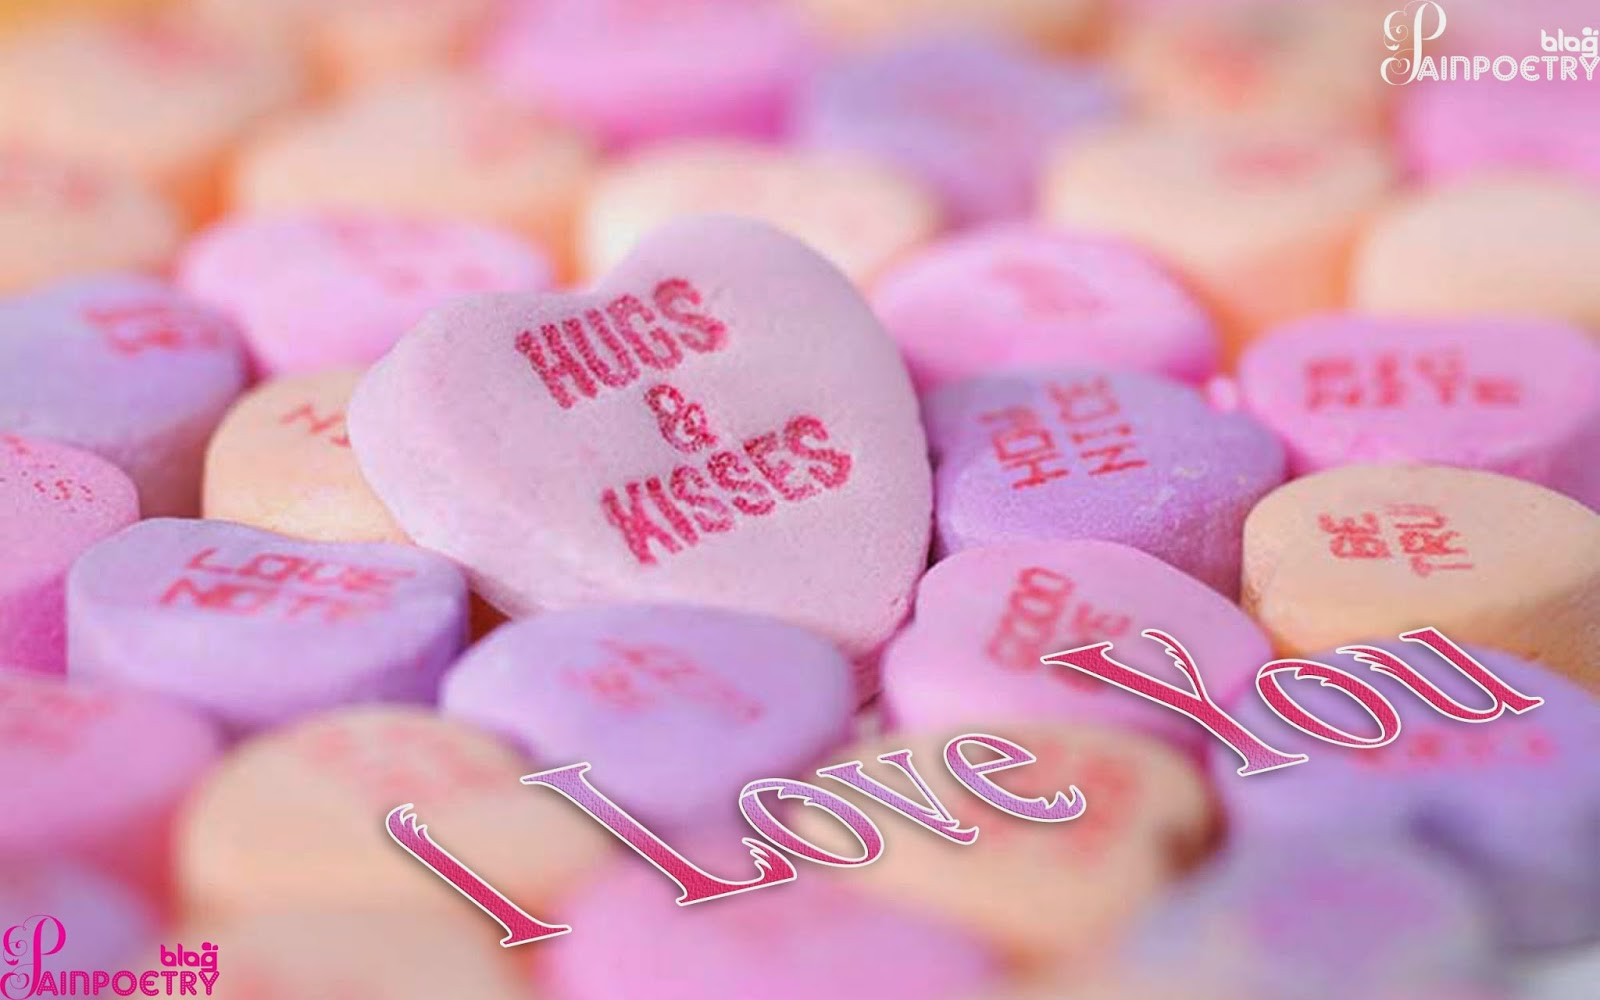 Love-Wishes-Image-Wallpaper-A-Larrge-Number-Of-Hearts-Wide